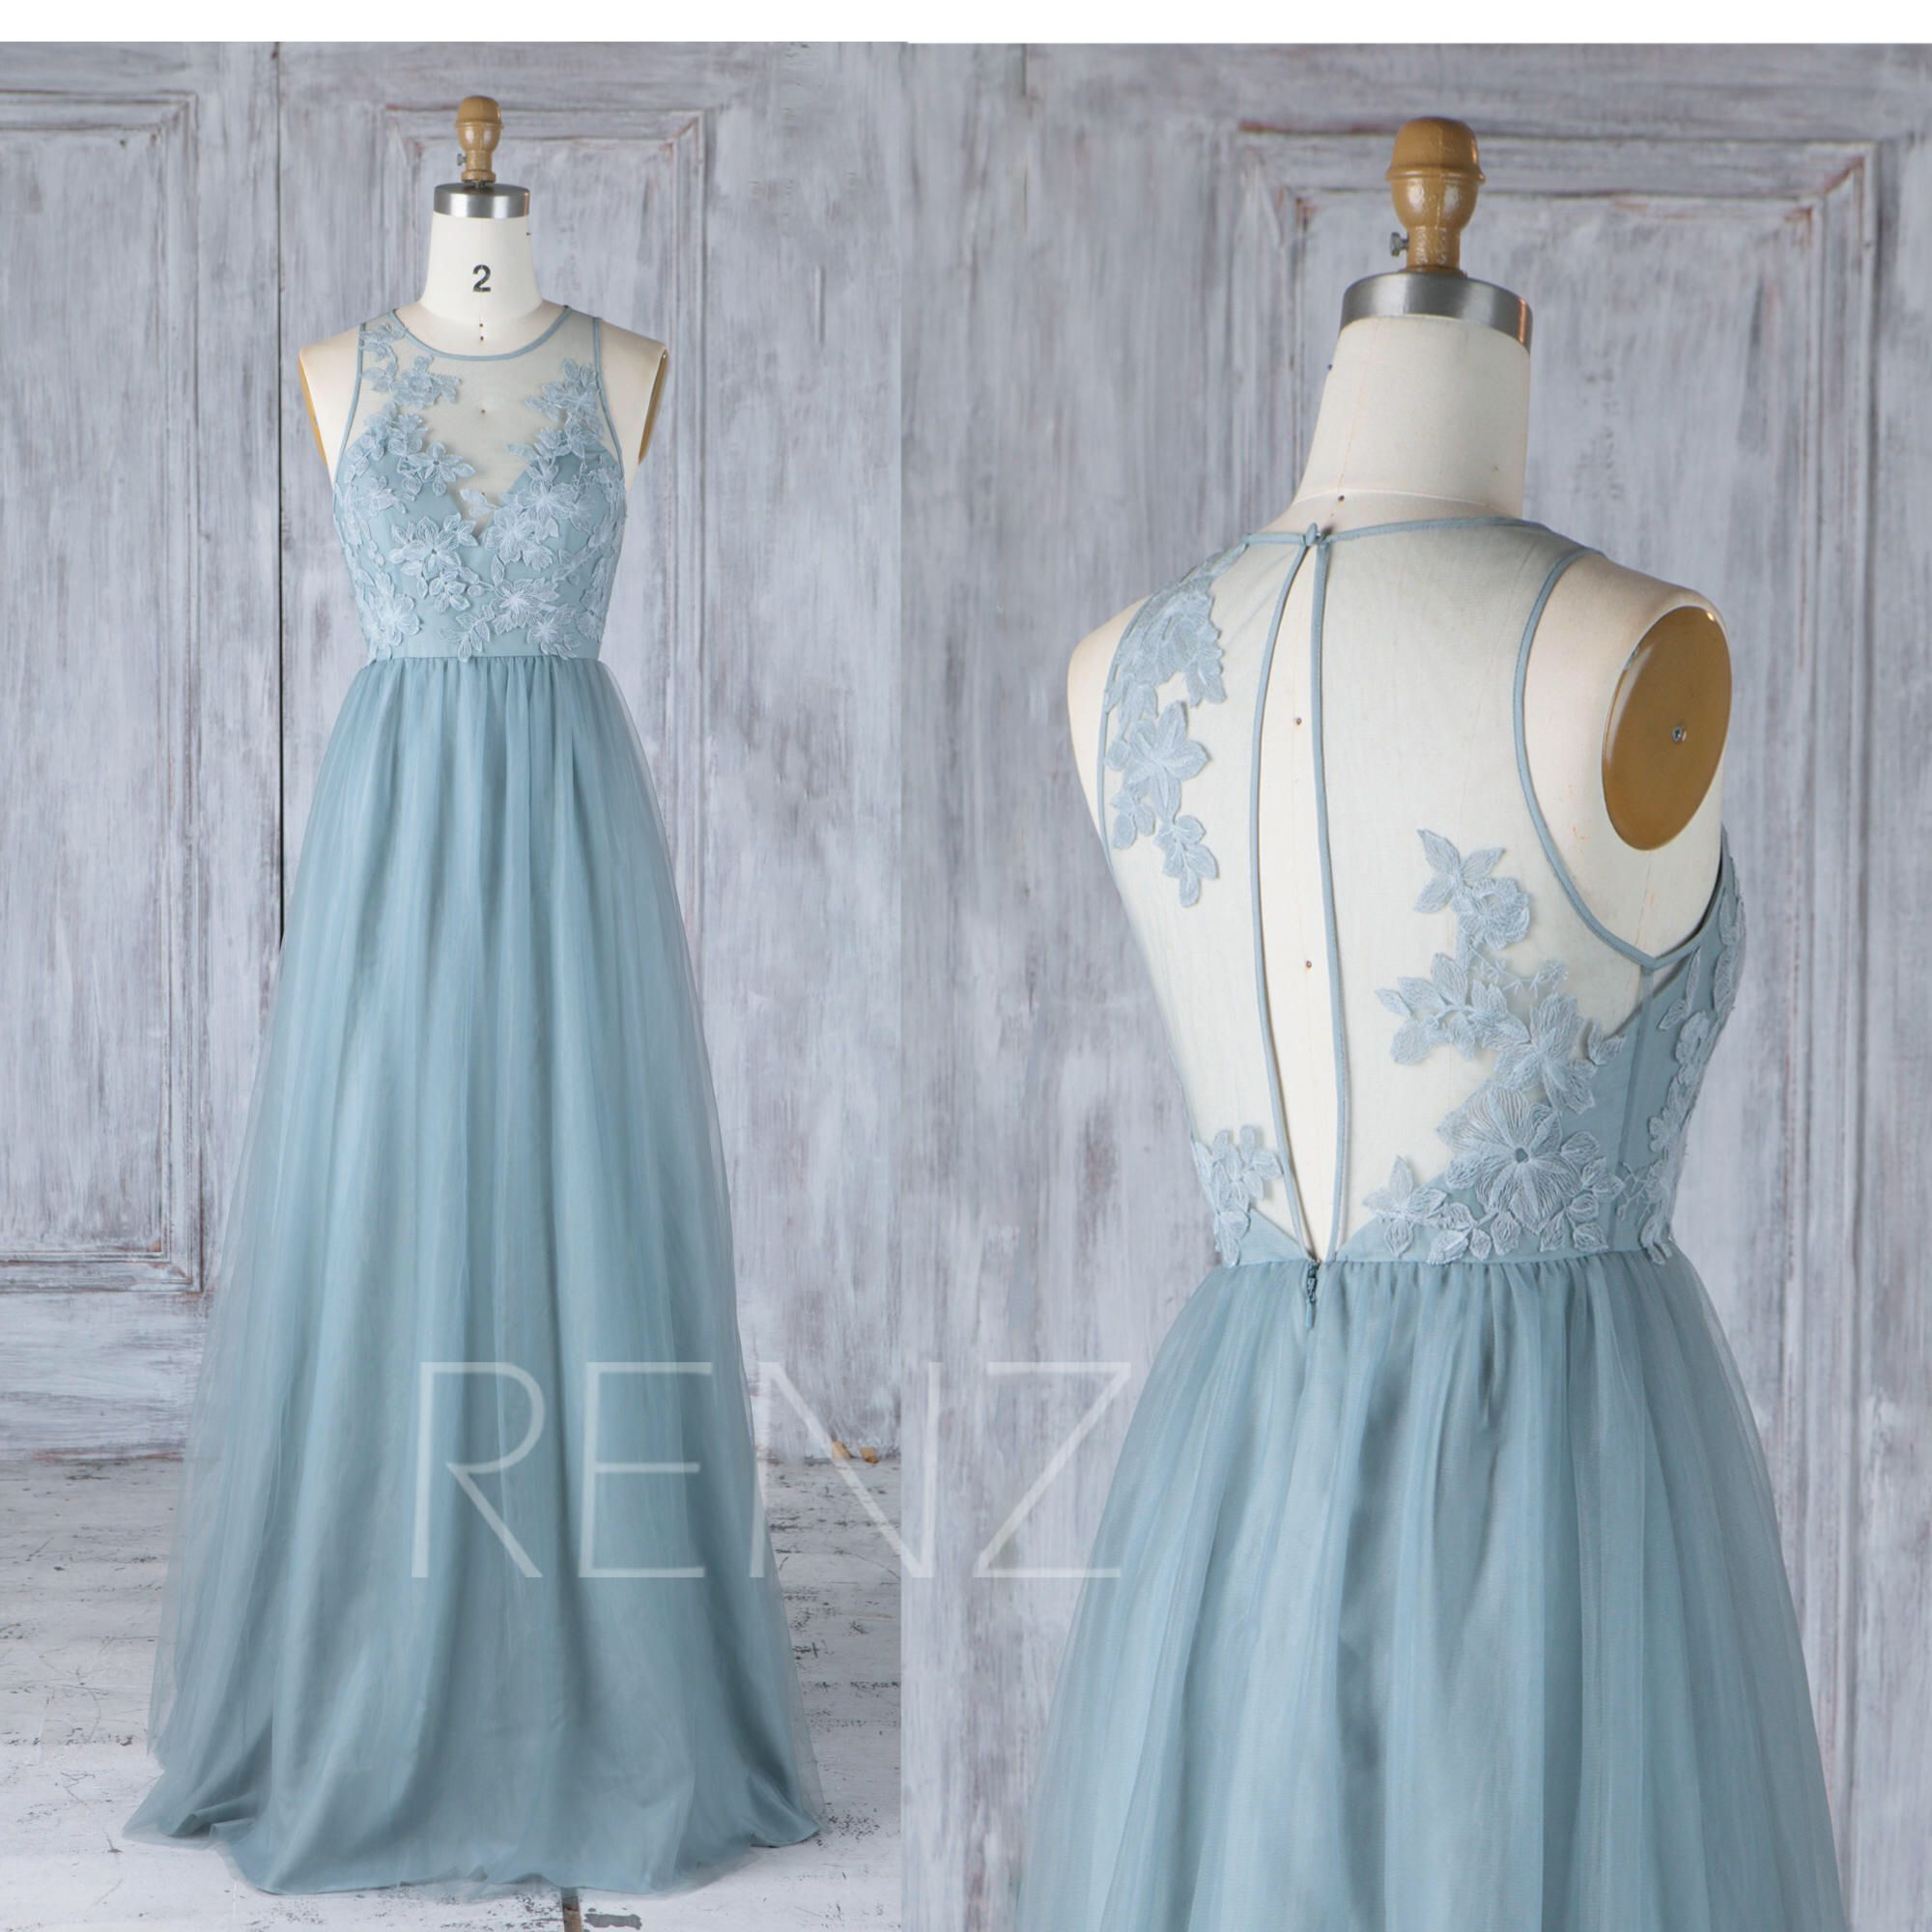 Dusty Blue Tulle Bridesmaid Dress, Sexy Lace Illusion Wedding ...